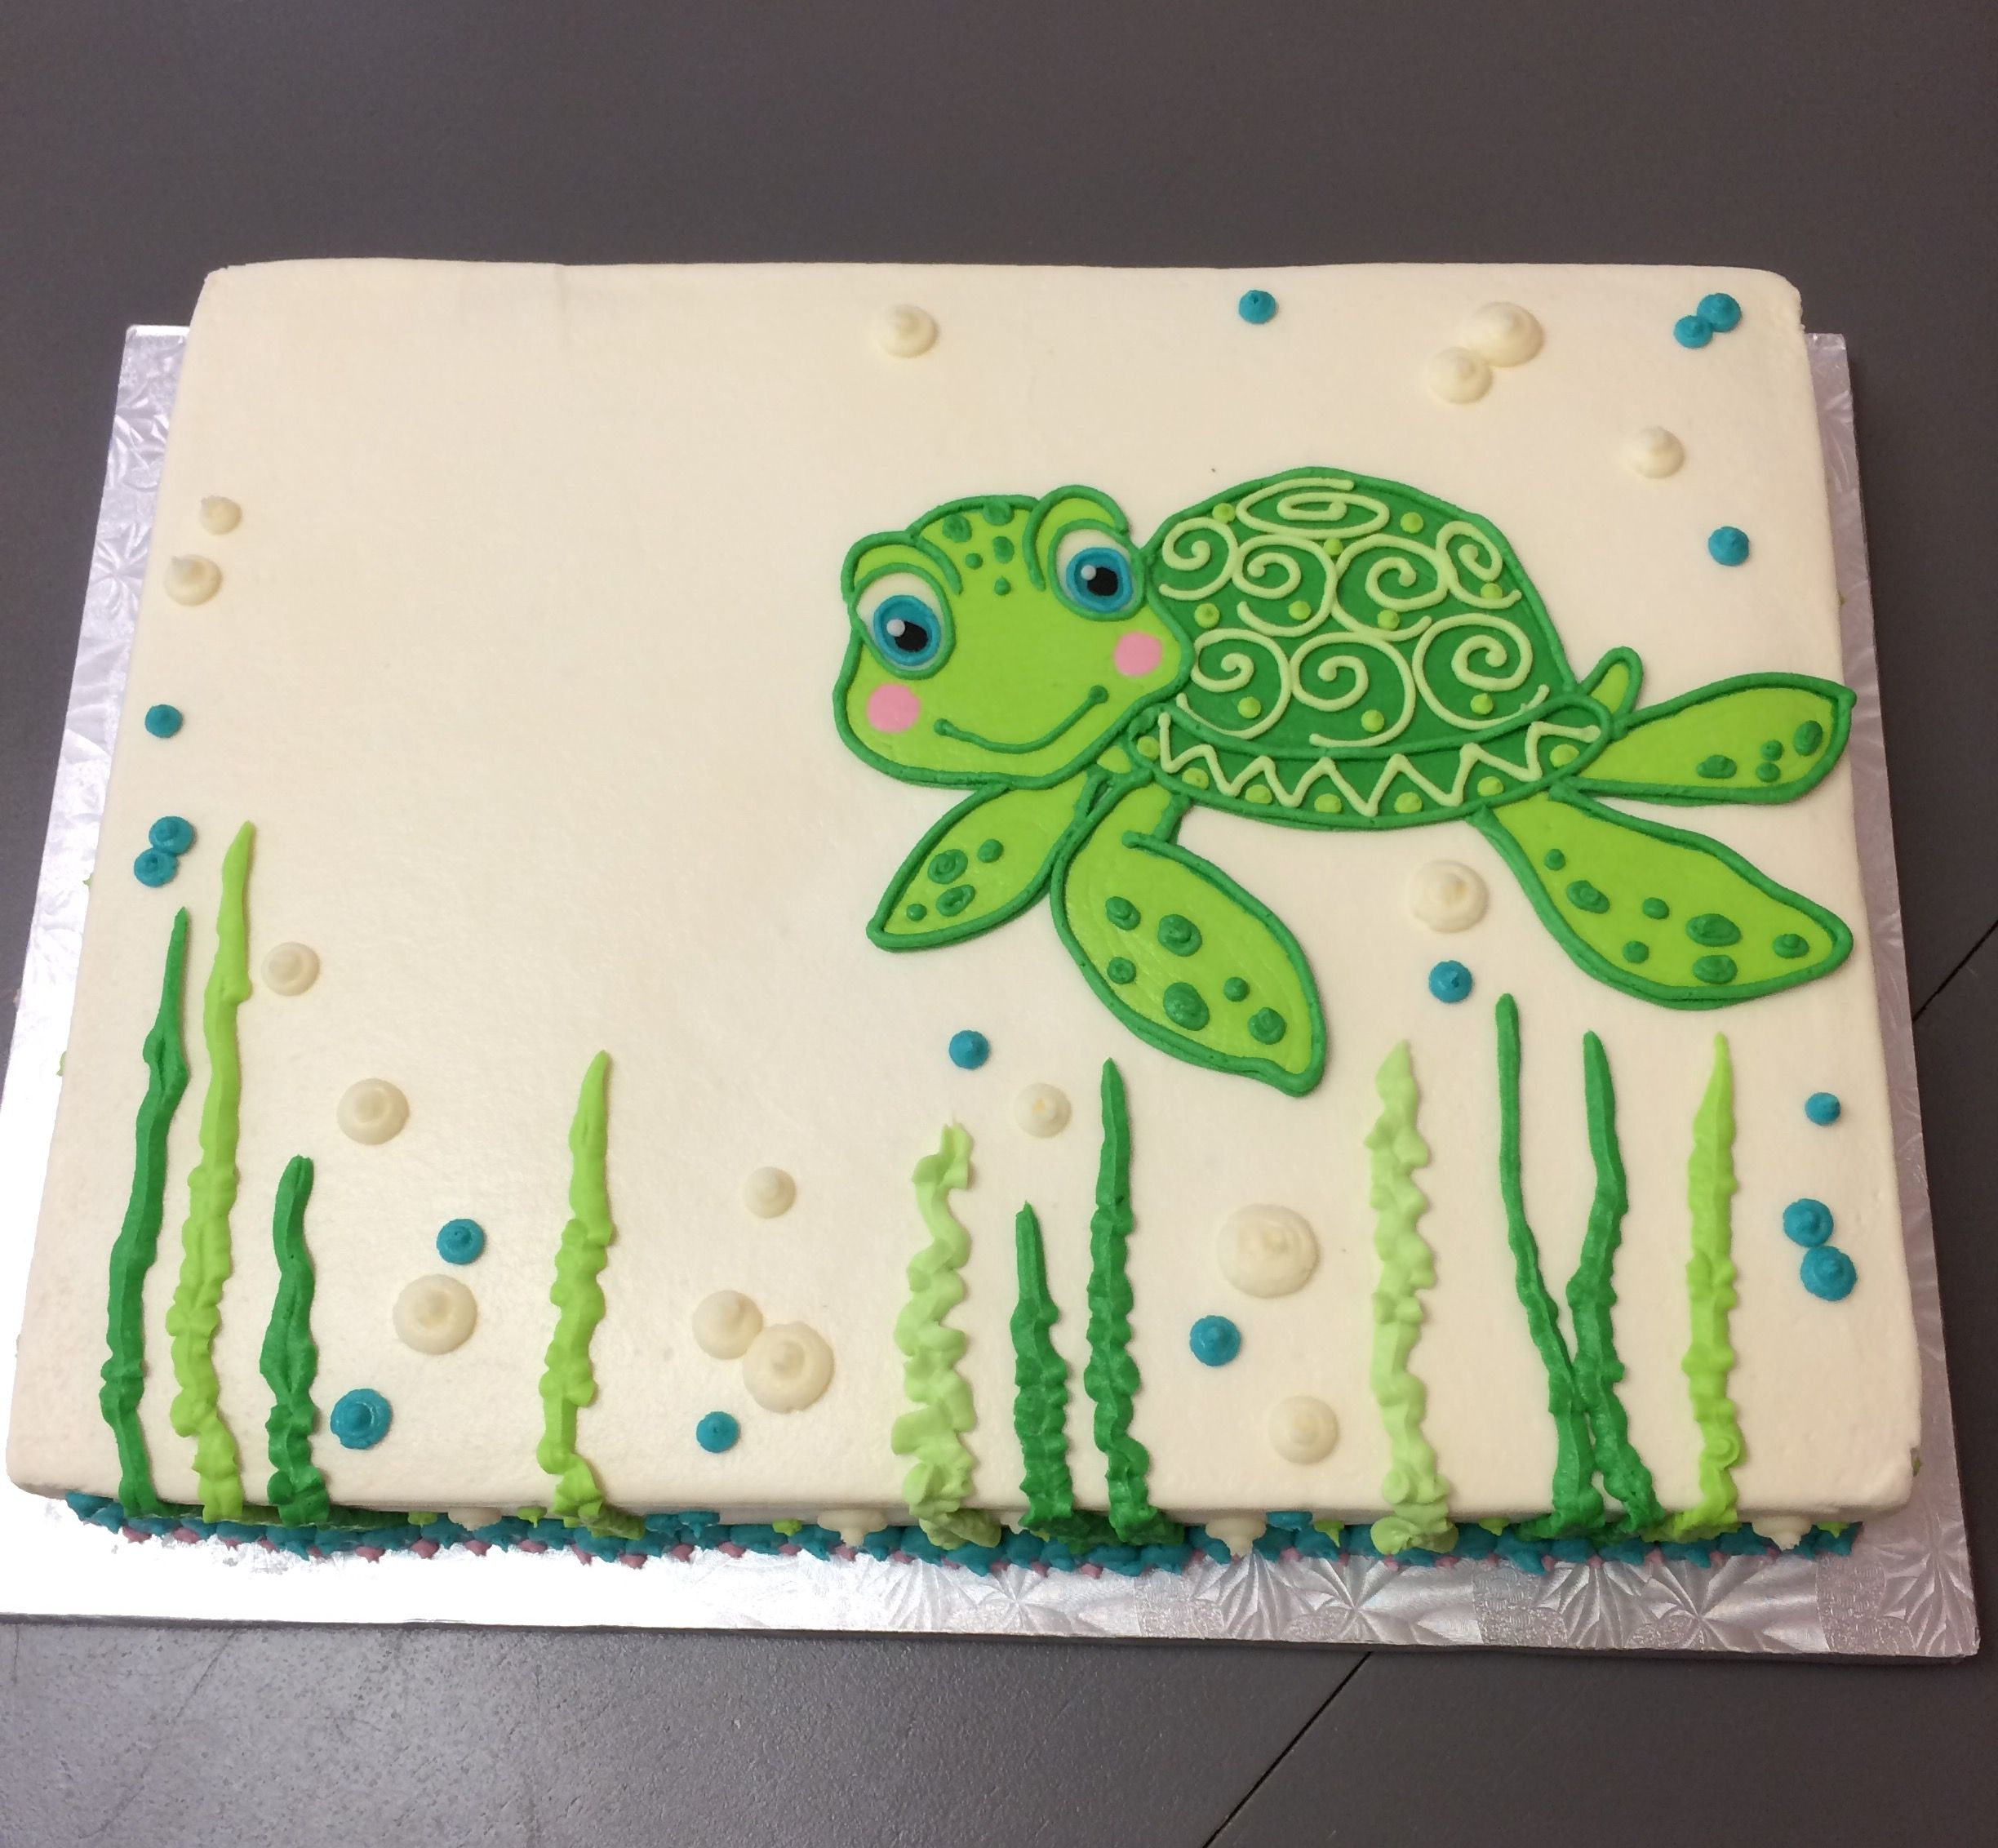 Pin by Nancy Shay on Cupcakes Pinterest Turtle Cake and Birthdays